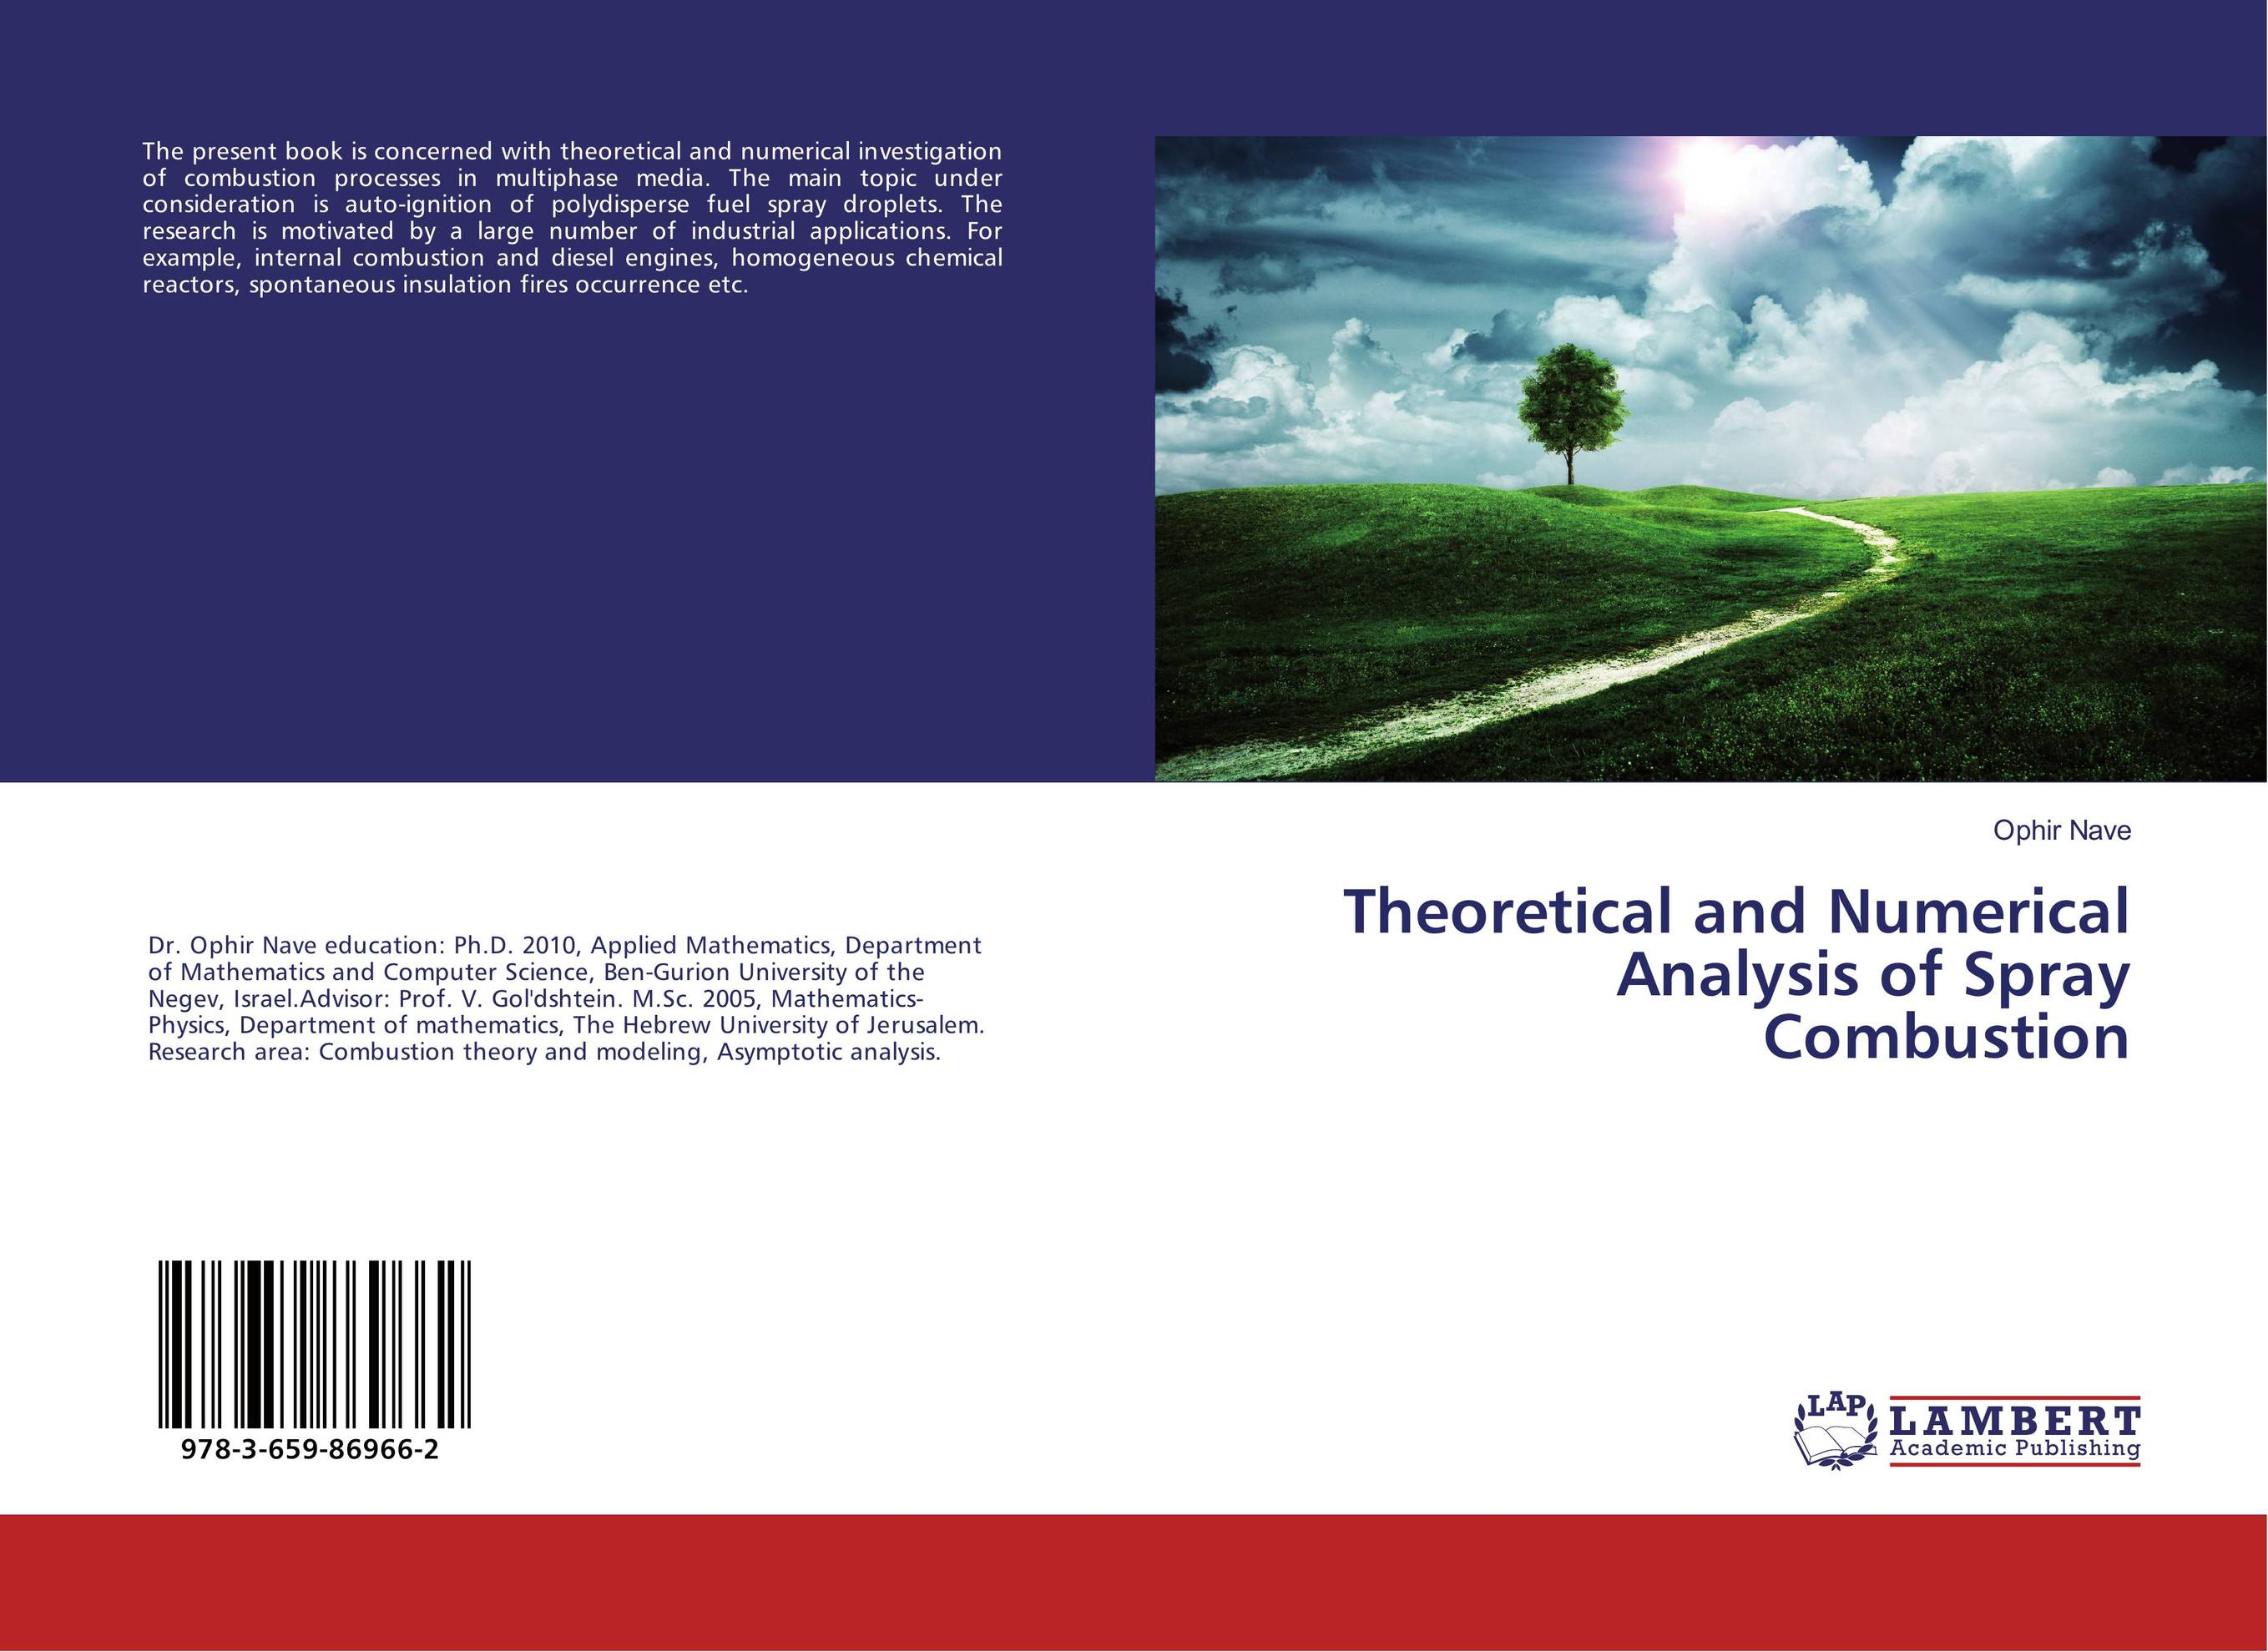 Theoretical and Numerical Analysis of Spray Combustion